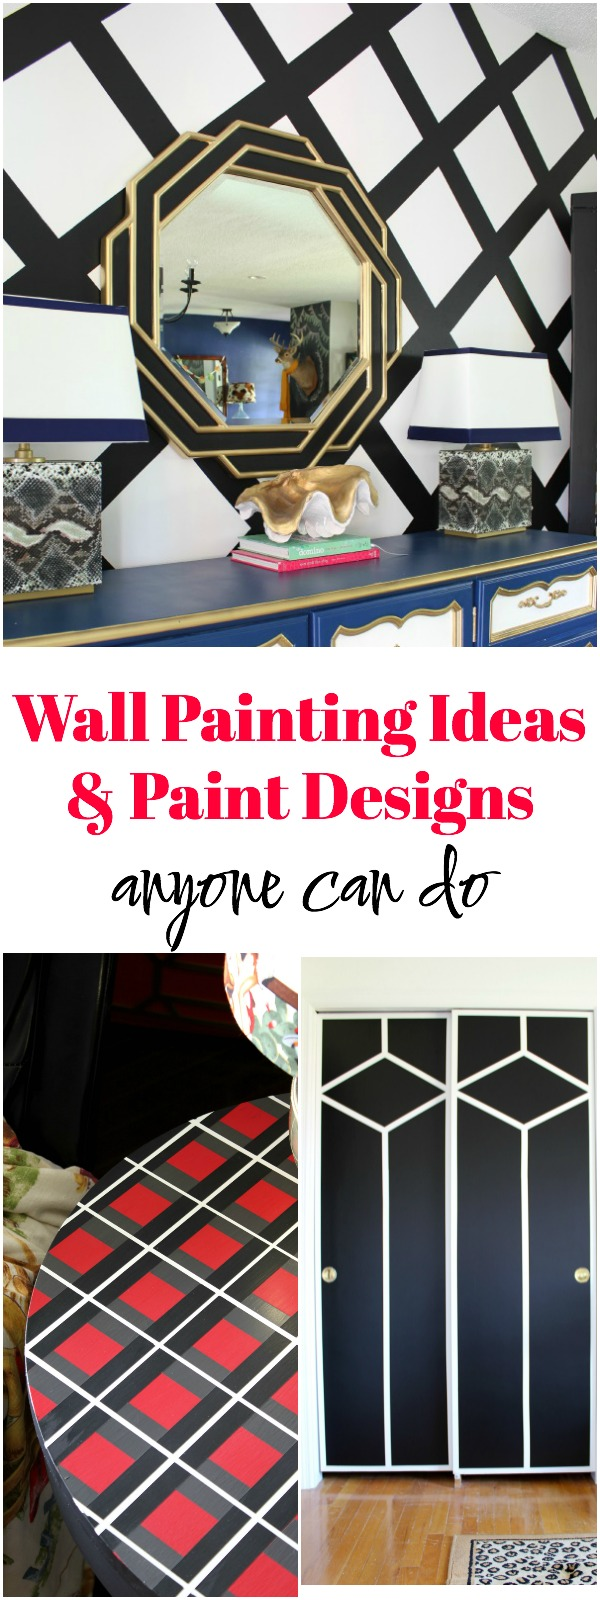 Wall Painting Ideas and Paint Designs | DIY Feature Wall Ideas | DIY Accent Wall Ideas | How to Paint a Feature Wall | How to paint Patterns